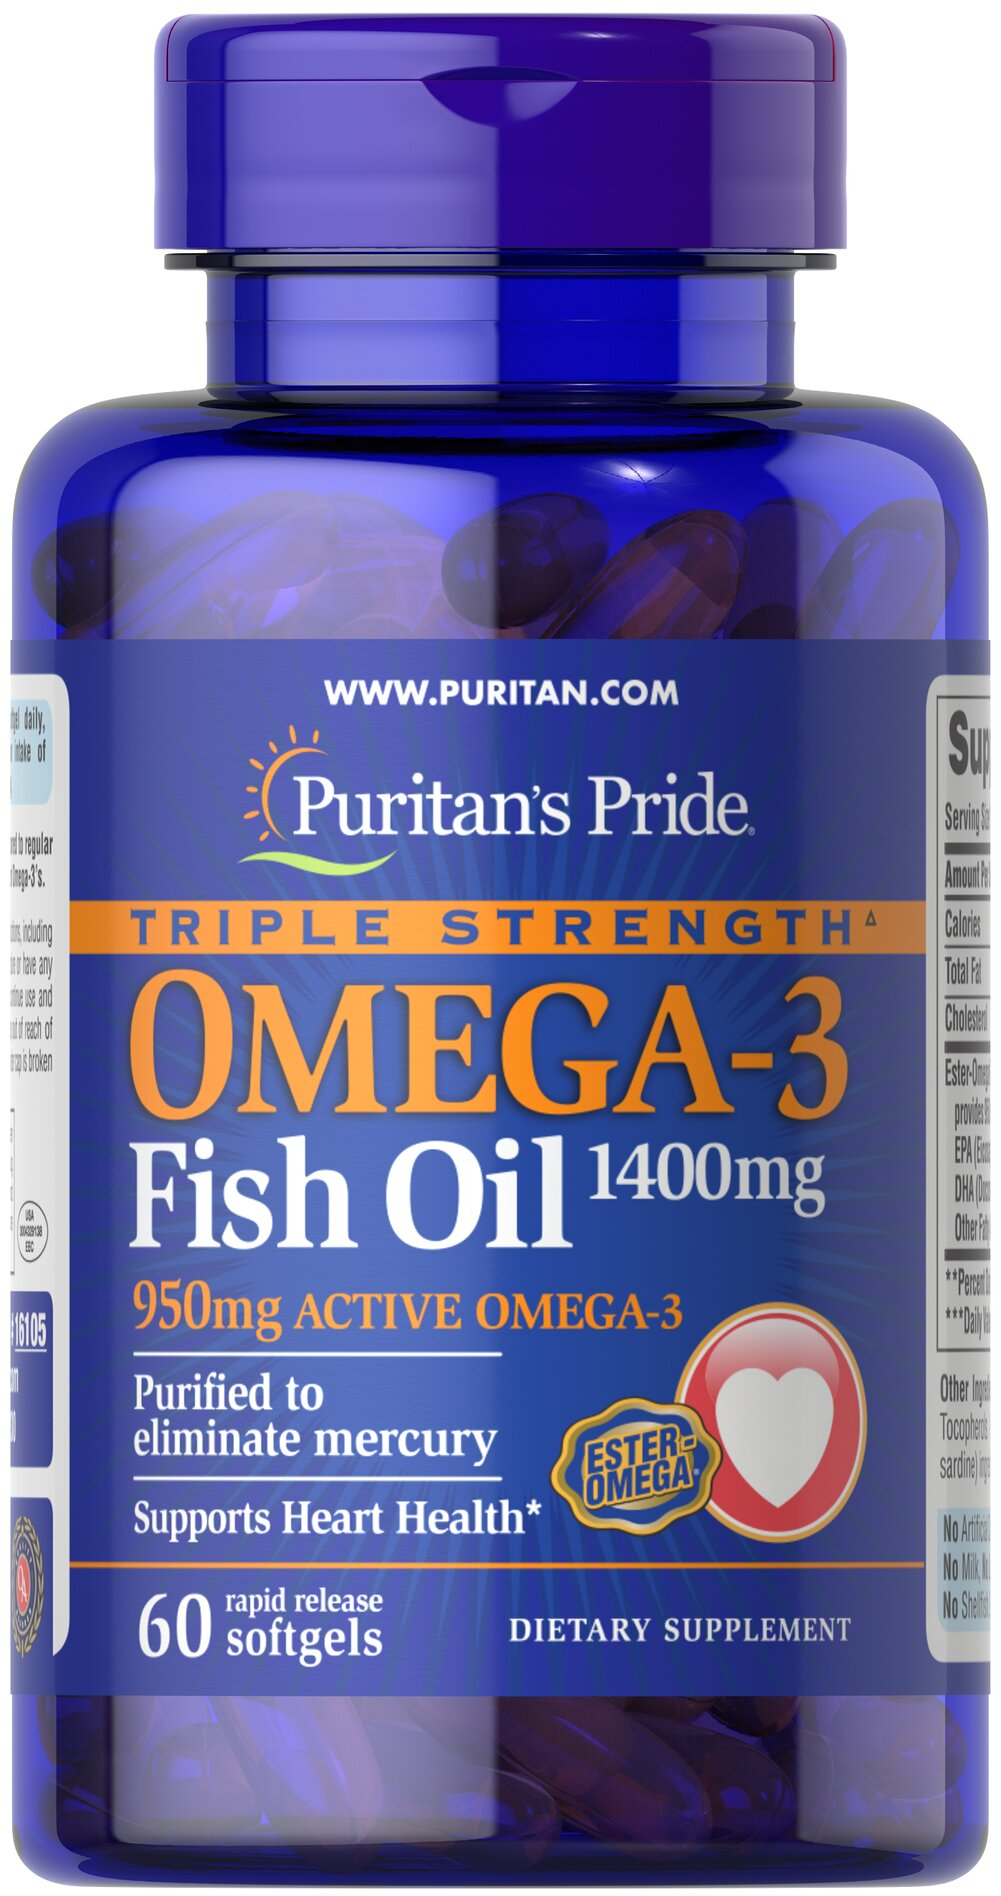 Triple Strength Omega-3 Fish Oil 1360 mg (950 mg Active Omega-3)  60 Softgels 1360 mg $17.59